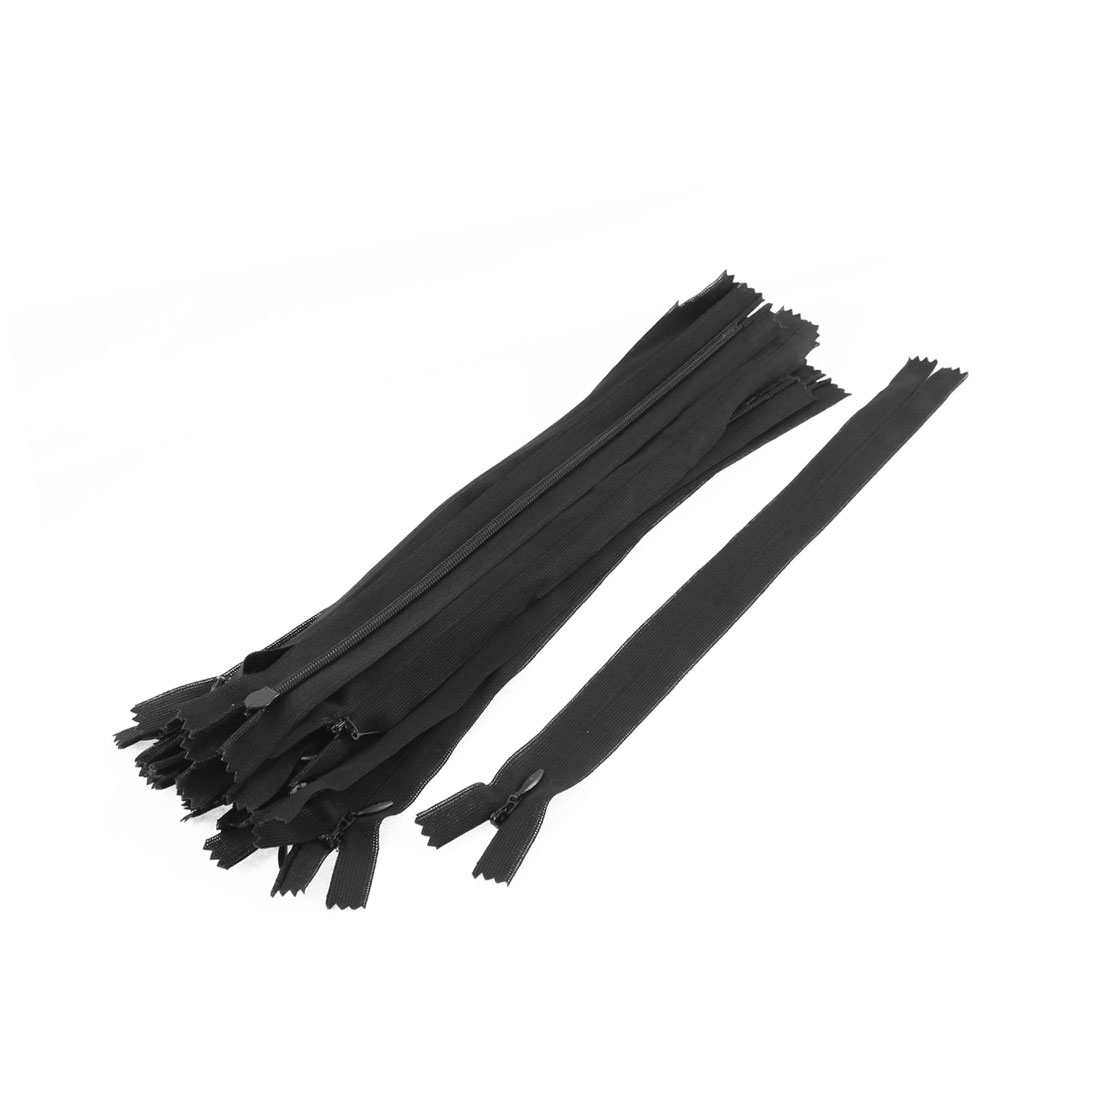 Dress Pants Closed End Nylon Zippers Tailor Sewing Craft Tool Black 25cm 20 Pcs